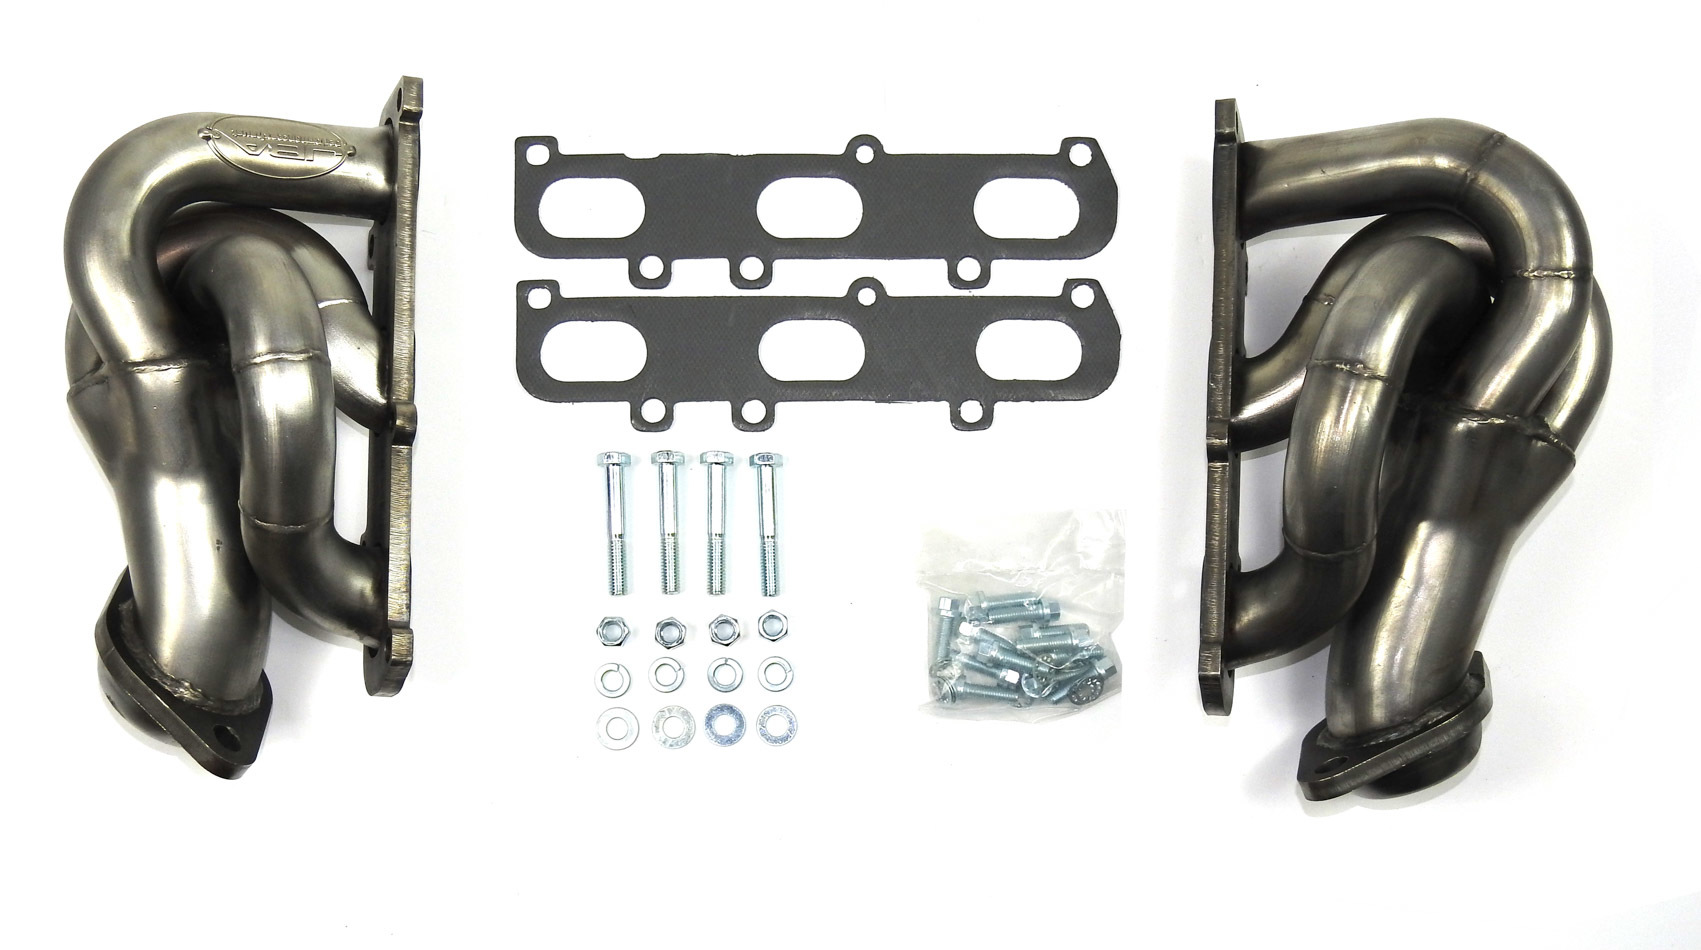 JBA Exhaust 1682S Headers, Cat4ward, Shorty Style, 1-5/8 in Primary, 2-1/2 in Collector, Stainless, Natural, 3.5 / 3.7 L, Ford EcoBoost, Ford Fullsize Truck 2011-17, Kit